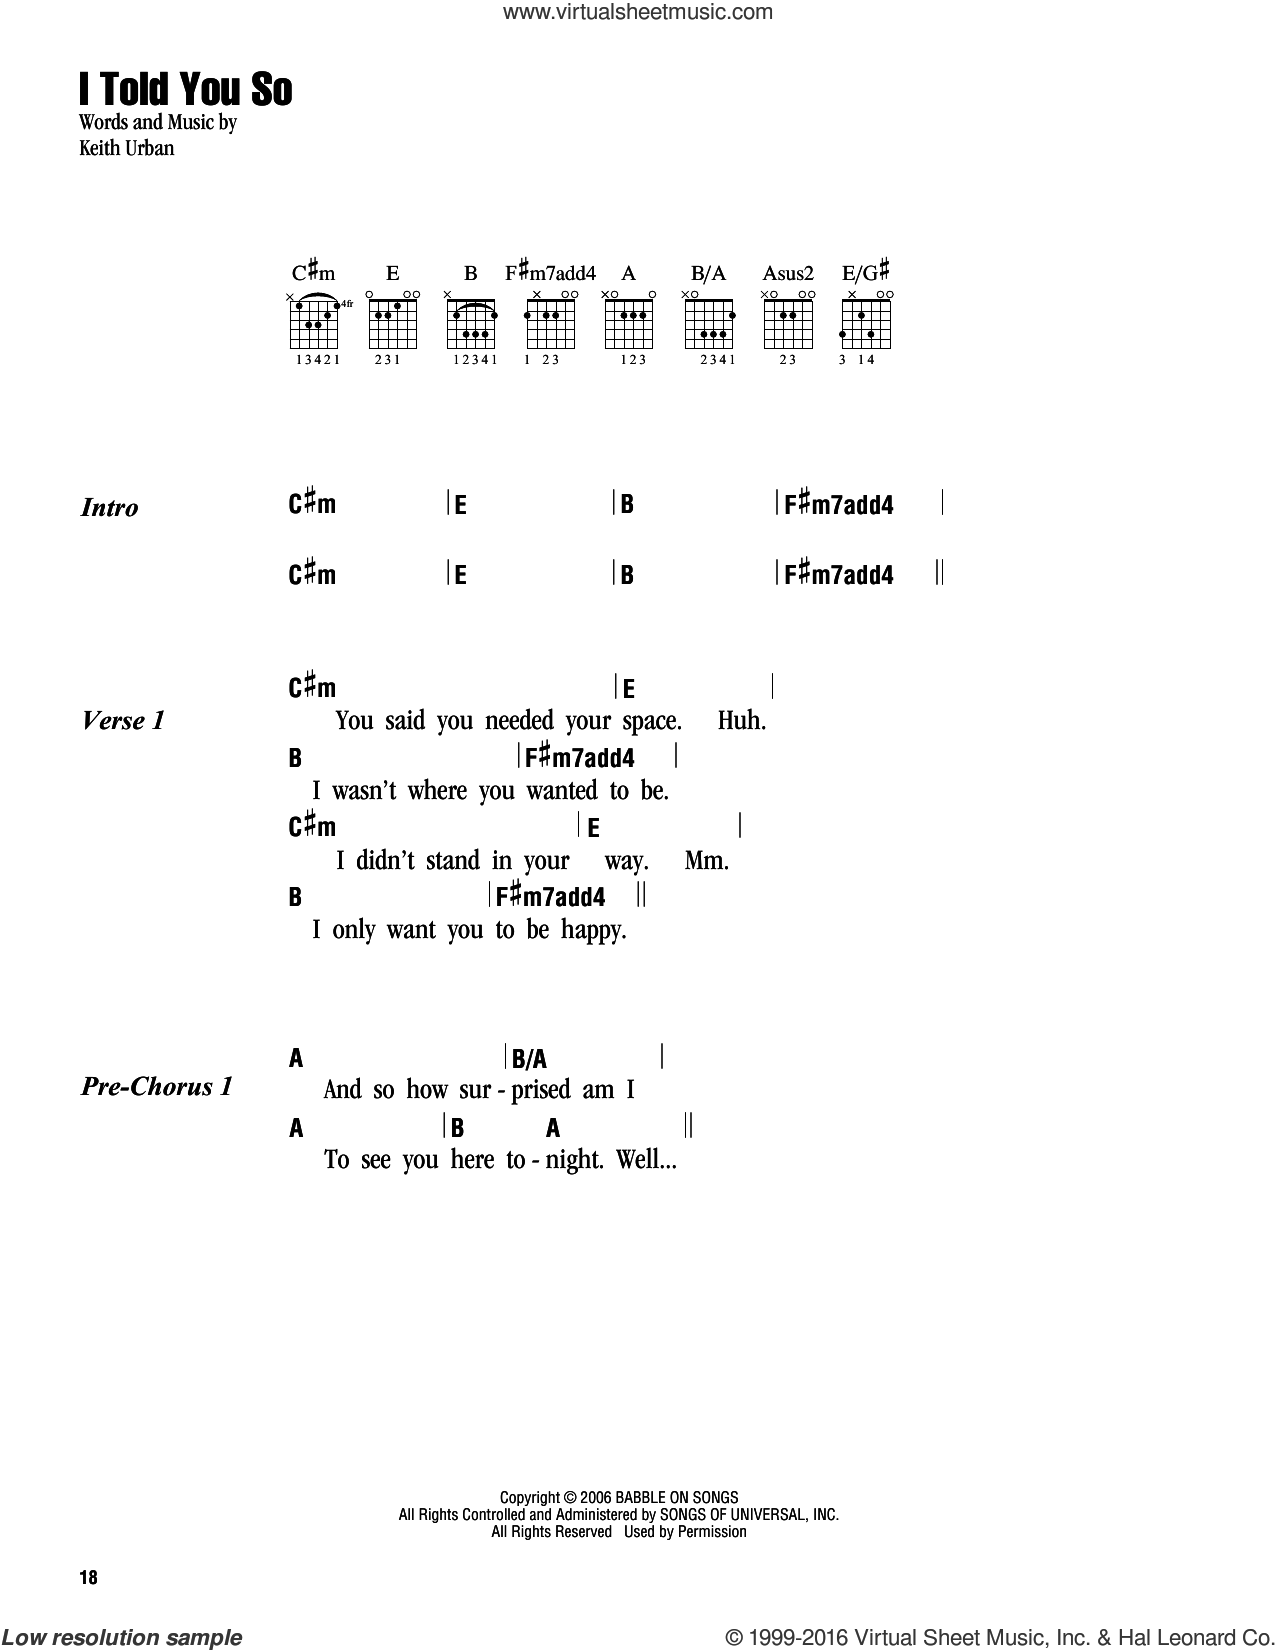 I Told You So sheet music for guitar (chords) by Keith Urban. Score Image Preview.